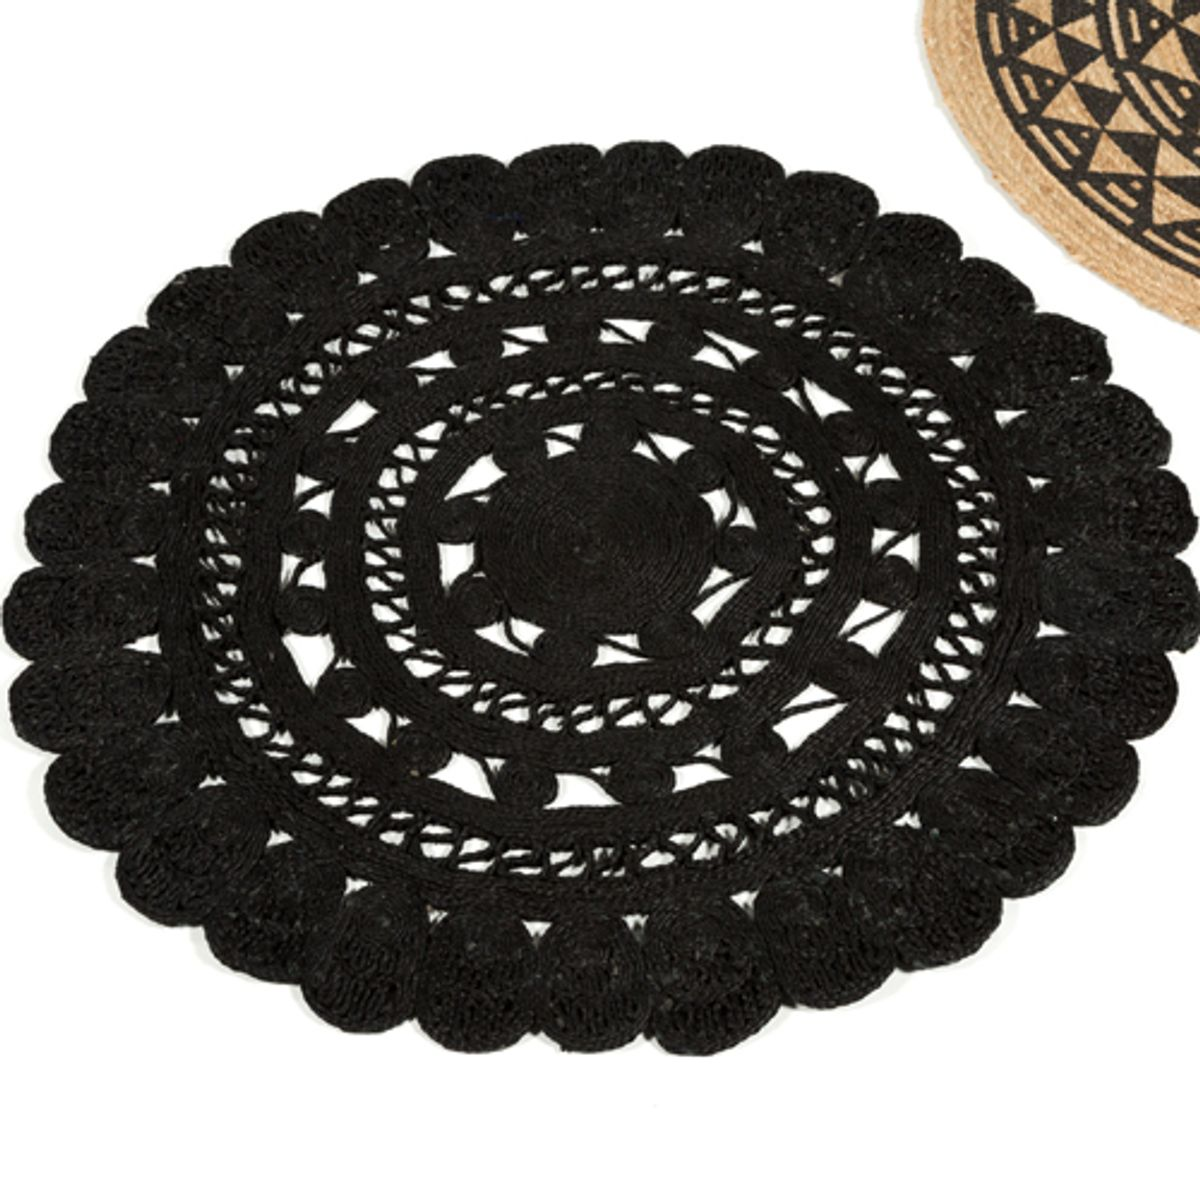 tapis rond en jute naturel tiss main fleur noir d120 cm decoclico. Black Bedroom Furniture Sets. Home Design Ideas